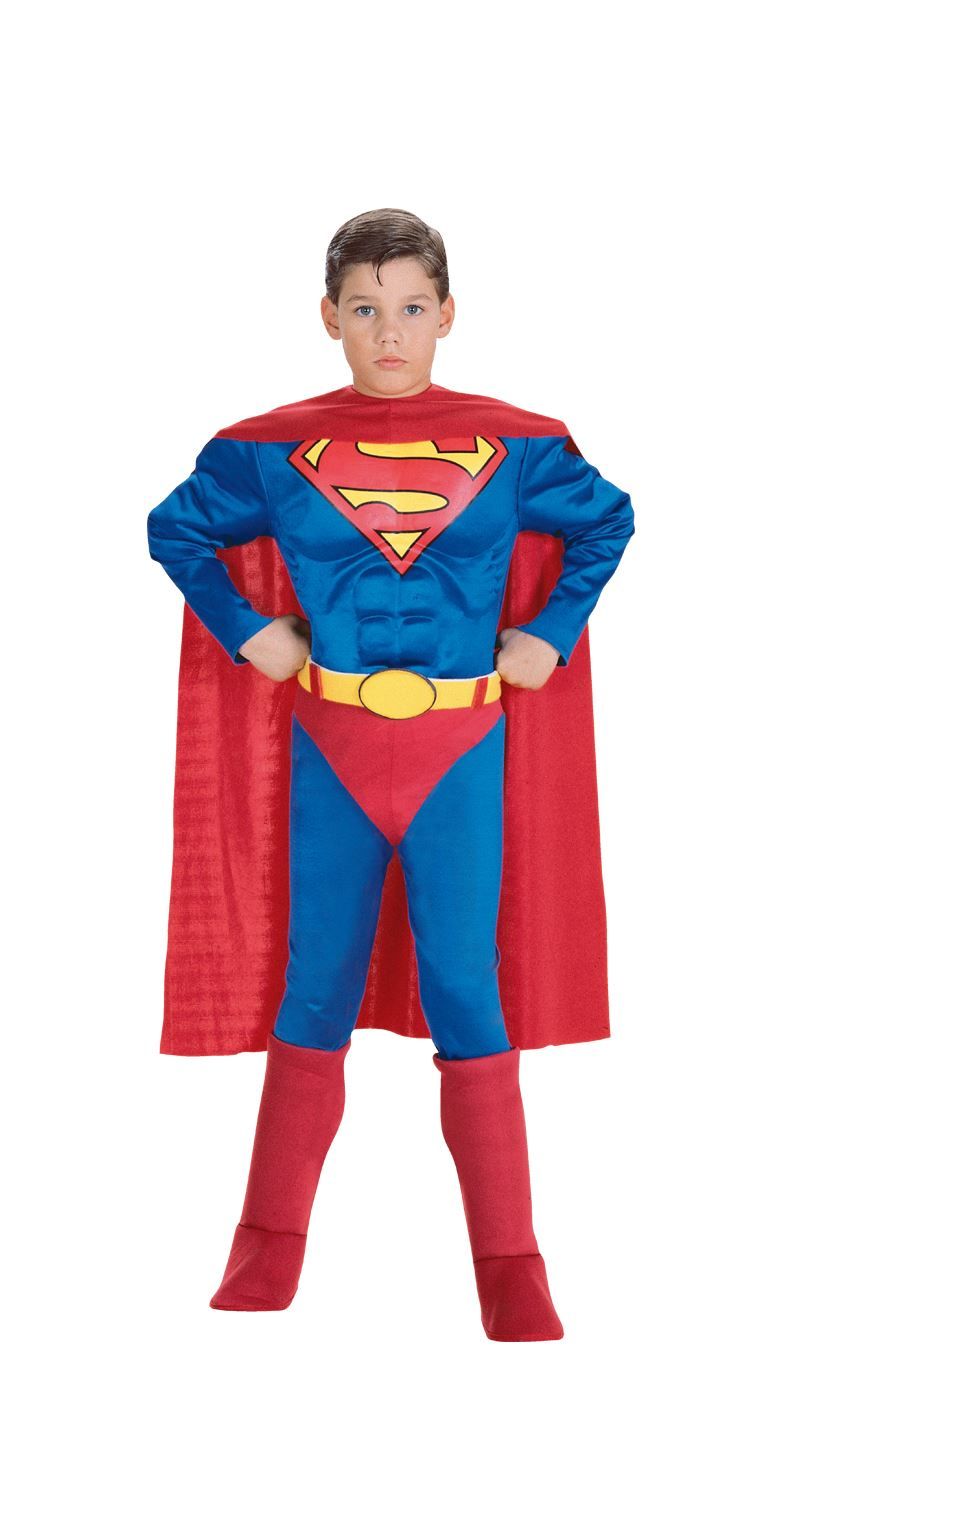 Find a great superhero costume for Halloween from our large selection of superhero costumes in various child, adult, plus sizes and styles for a super superhero Halloween costume.